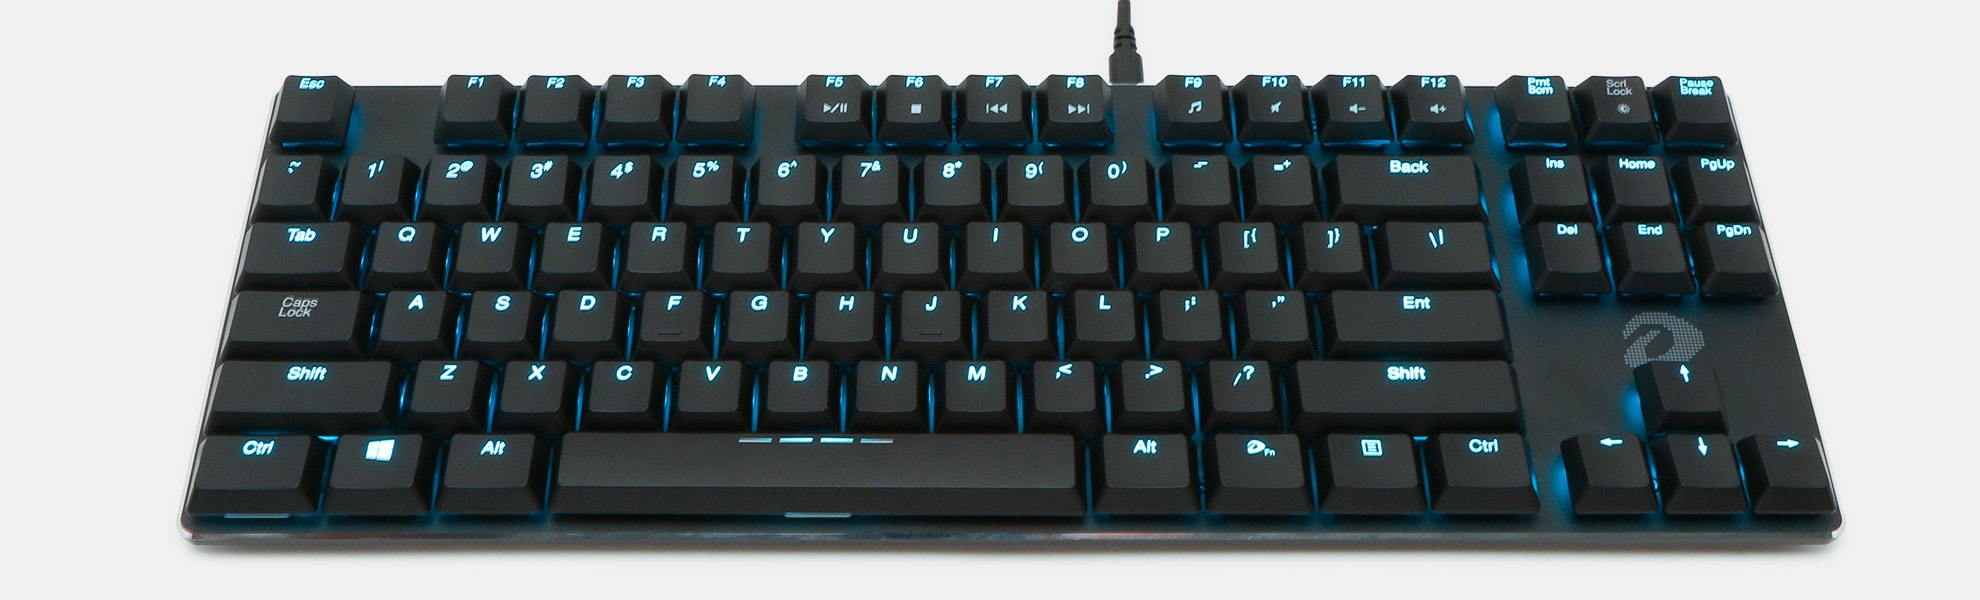 DAREU EK820 87-Key Mechanical Keyboard